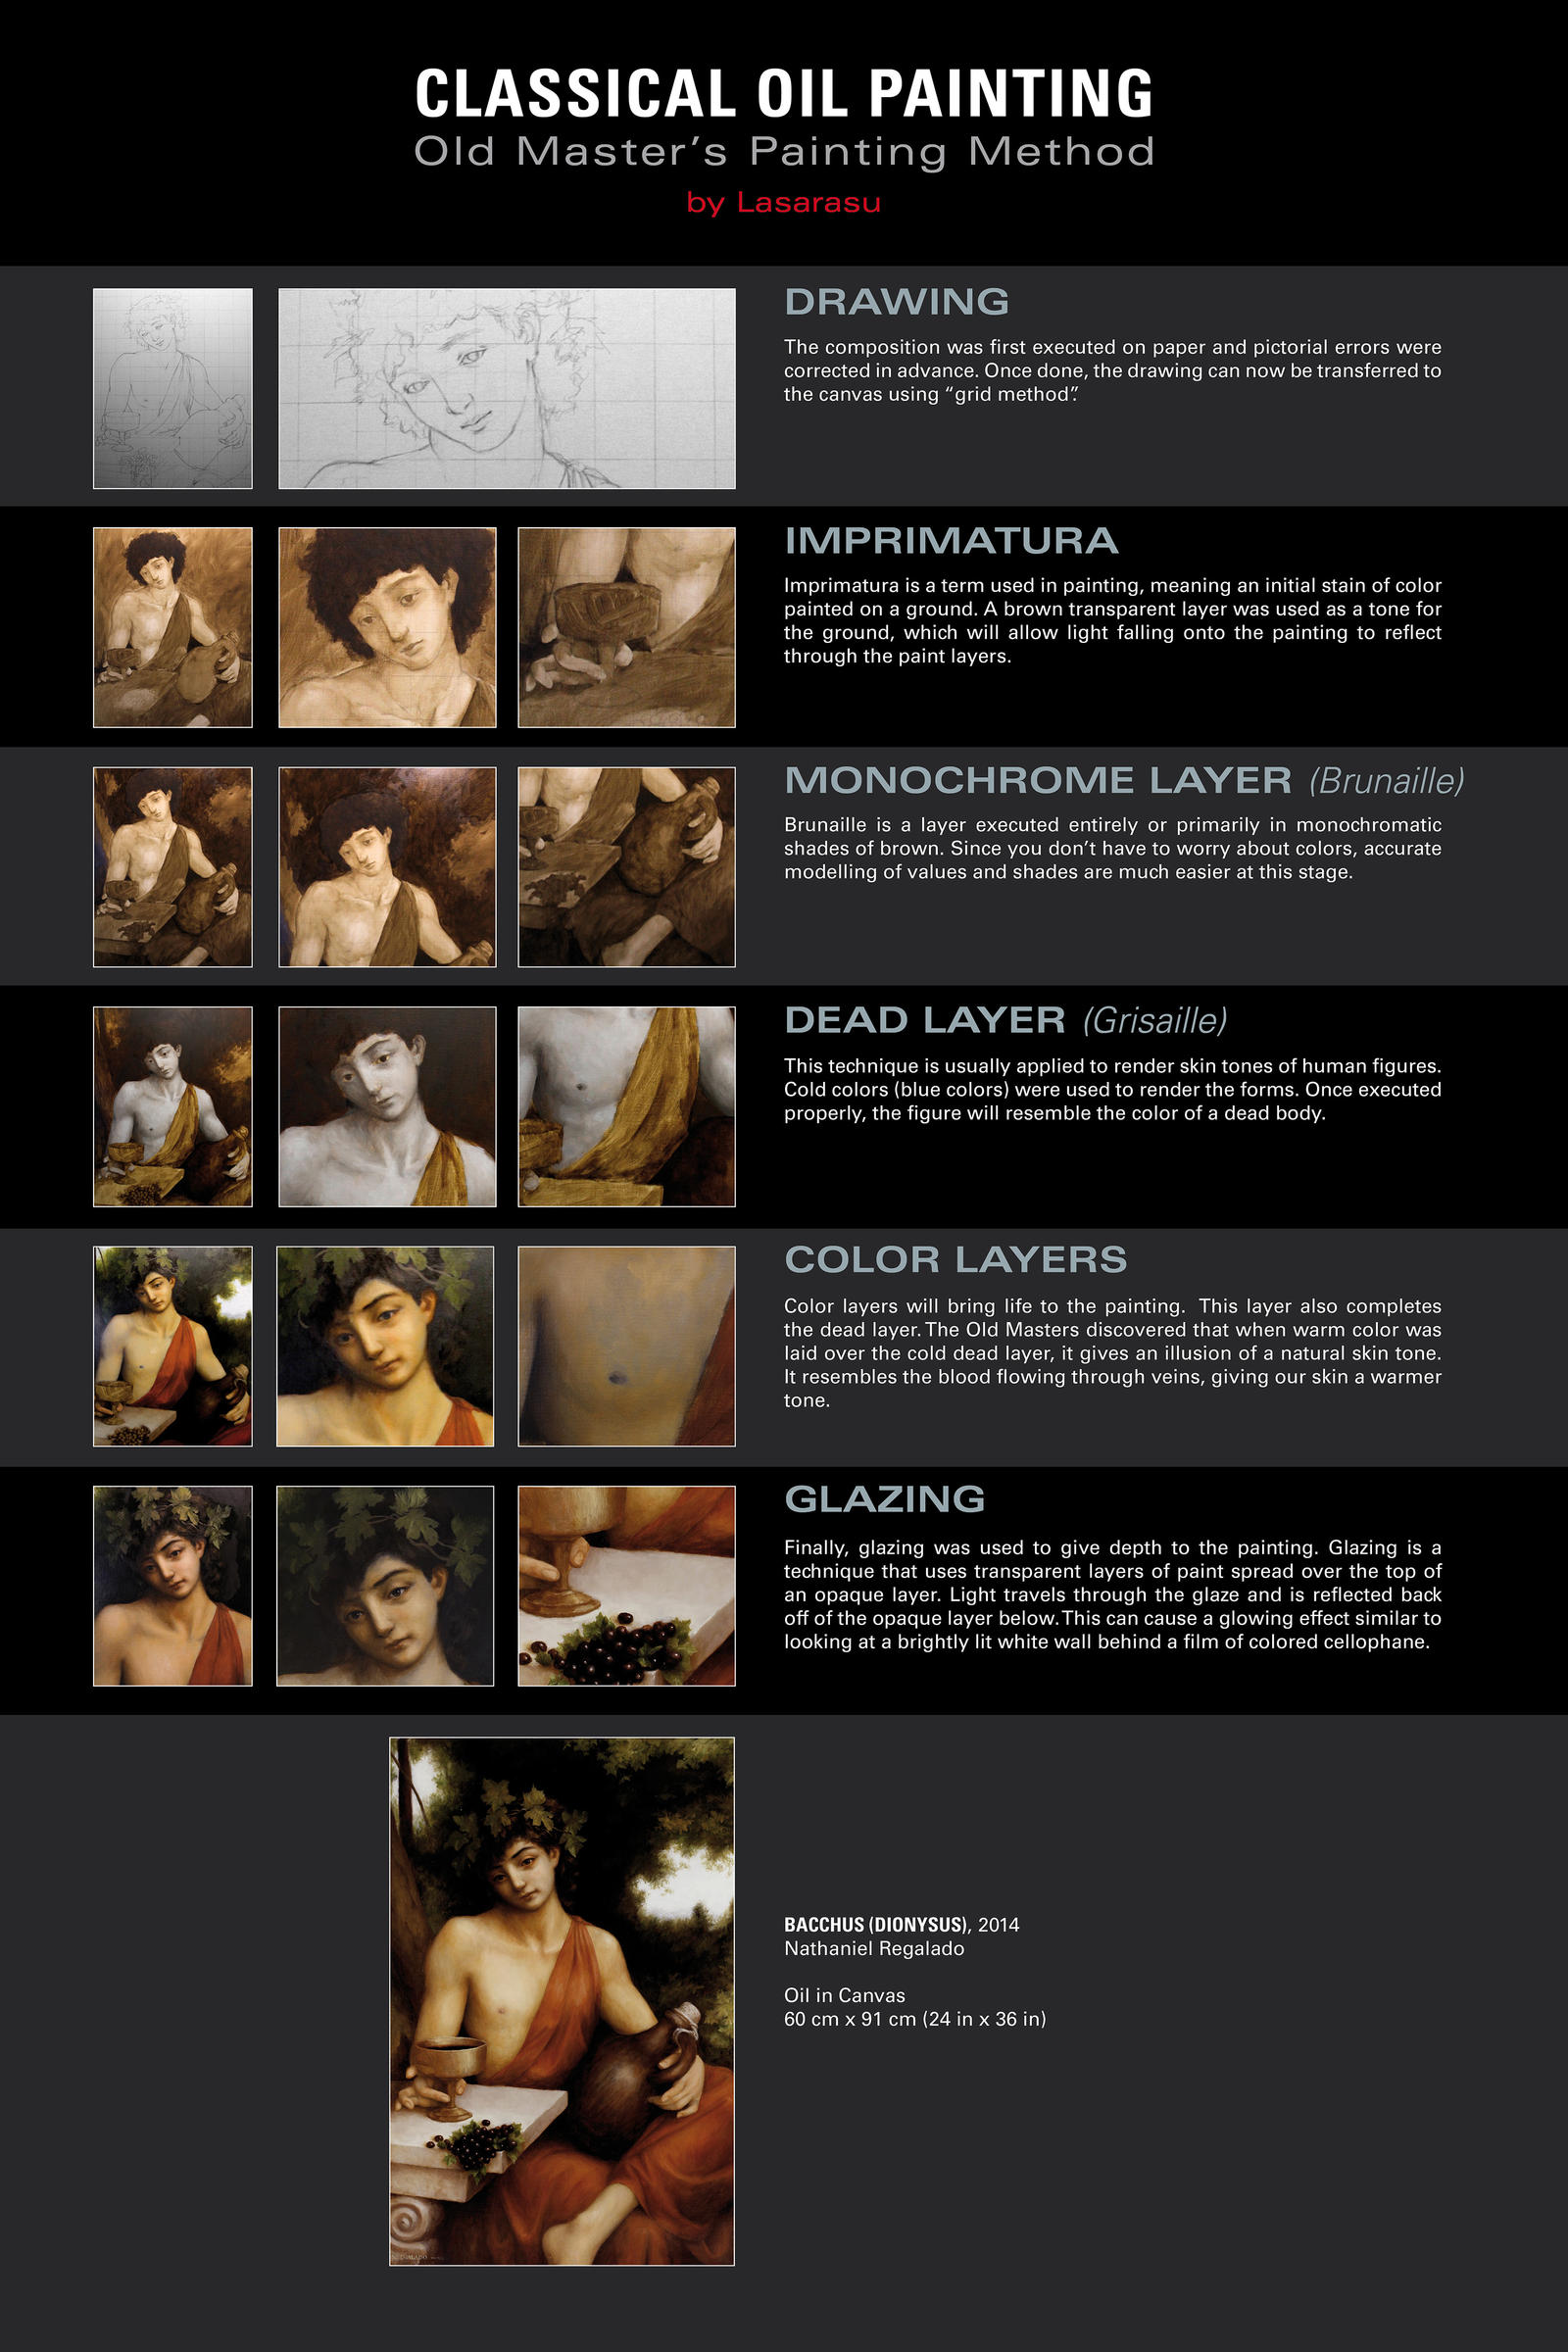 Classical Oil Painting Tutorial 02 - Bacchus by Lasarasu